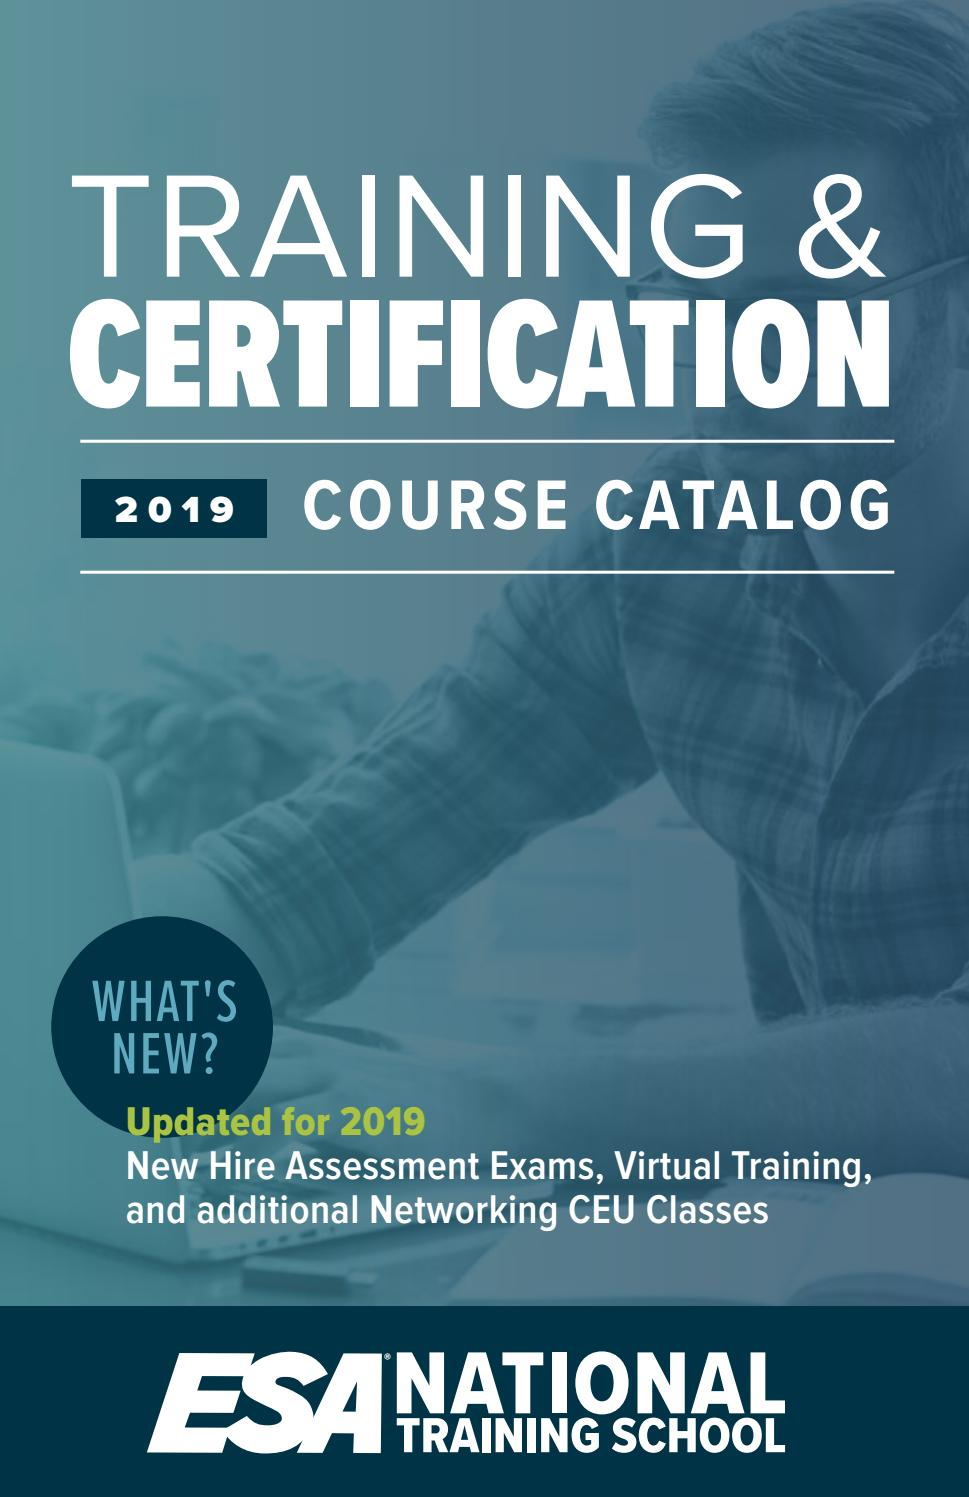 2019 Esa Nts Training Certification Course Catalog By